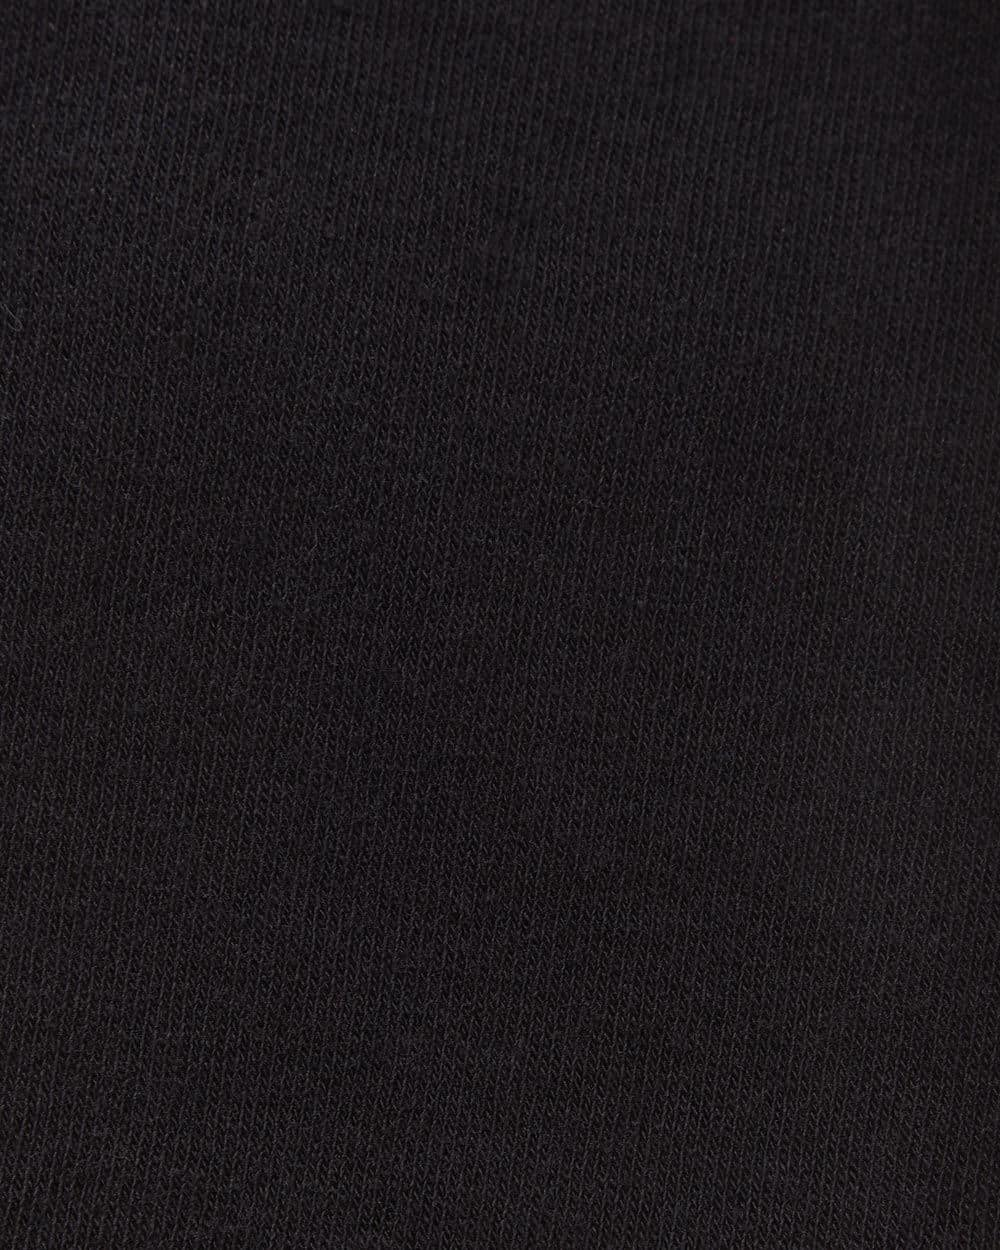 3-Pair Set of Black Socks